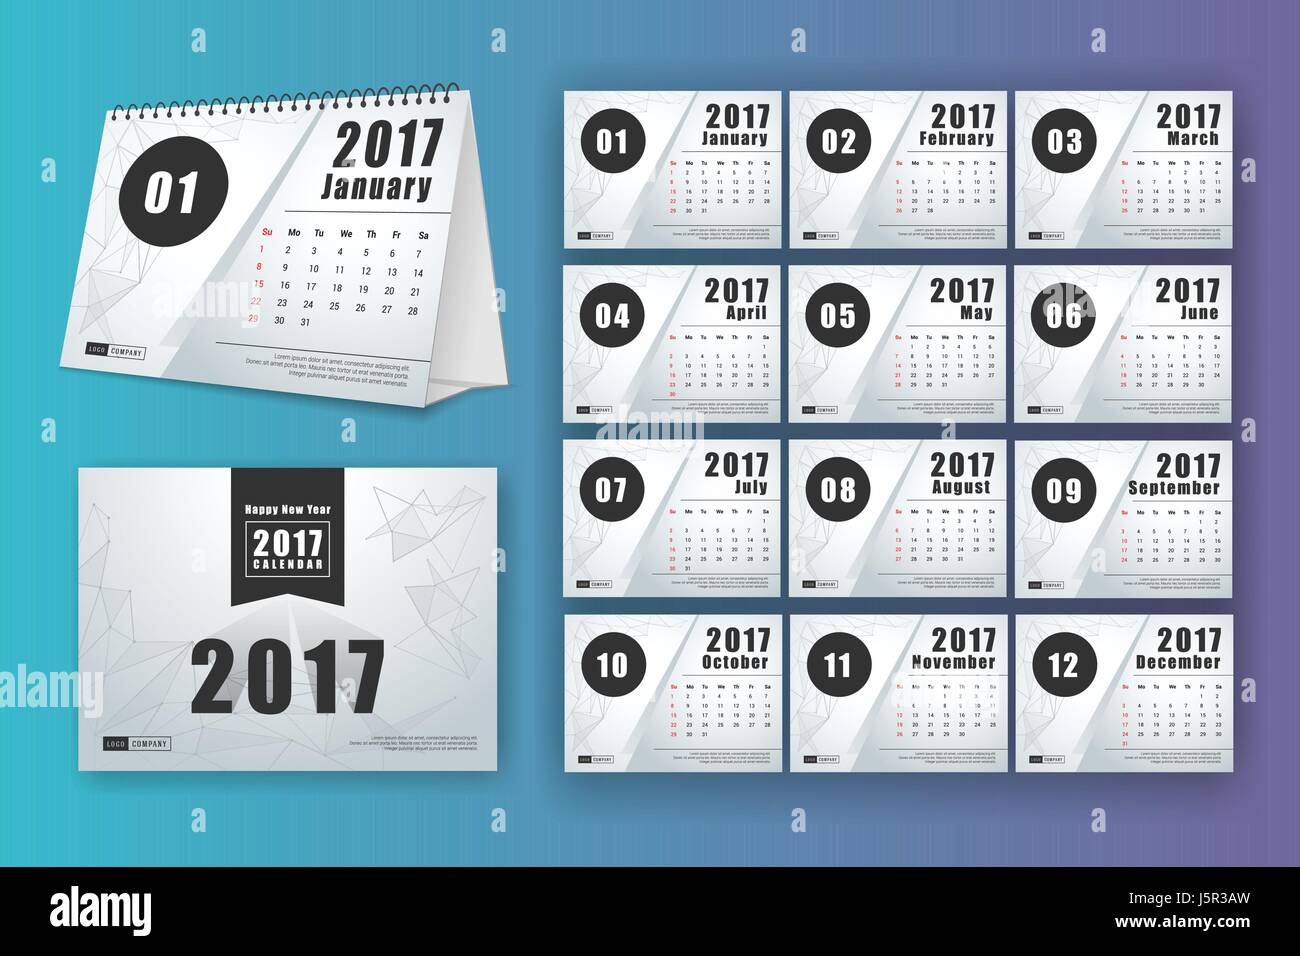 12 month desk calendar template for print design with mesh polygon